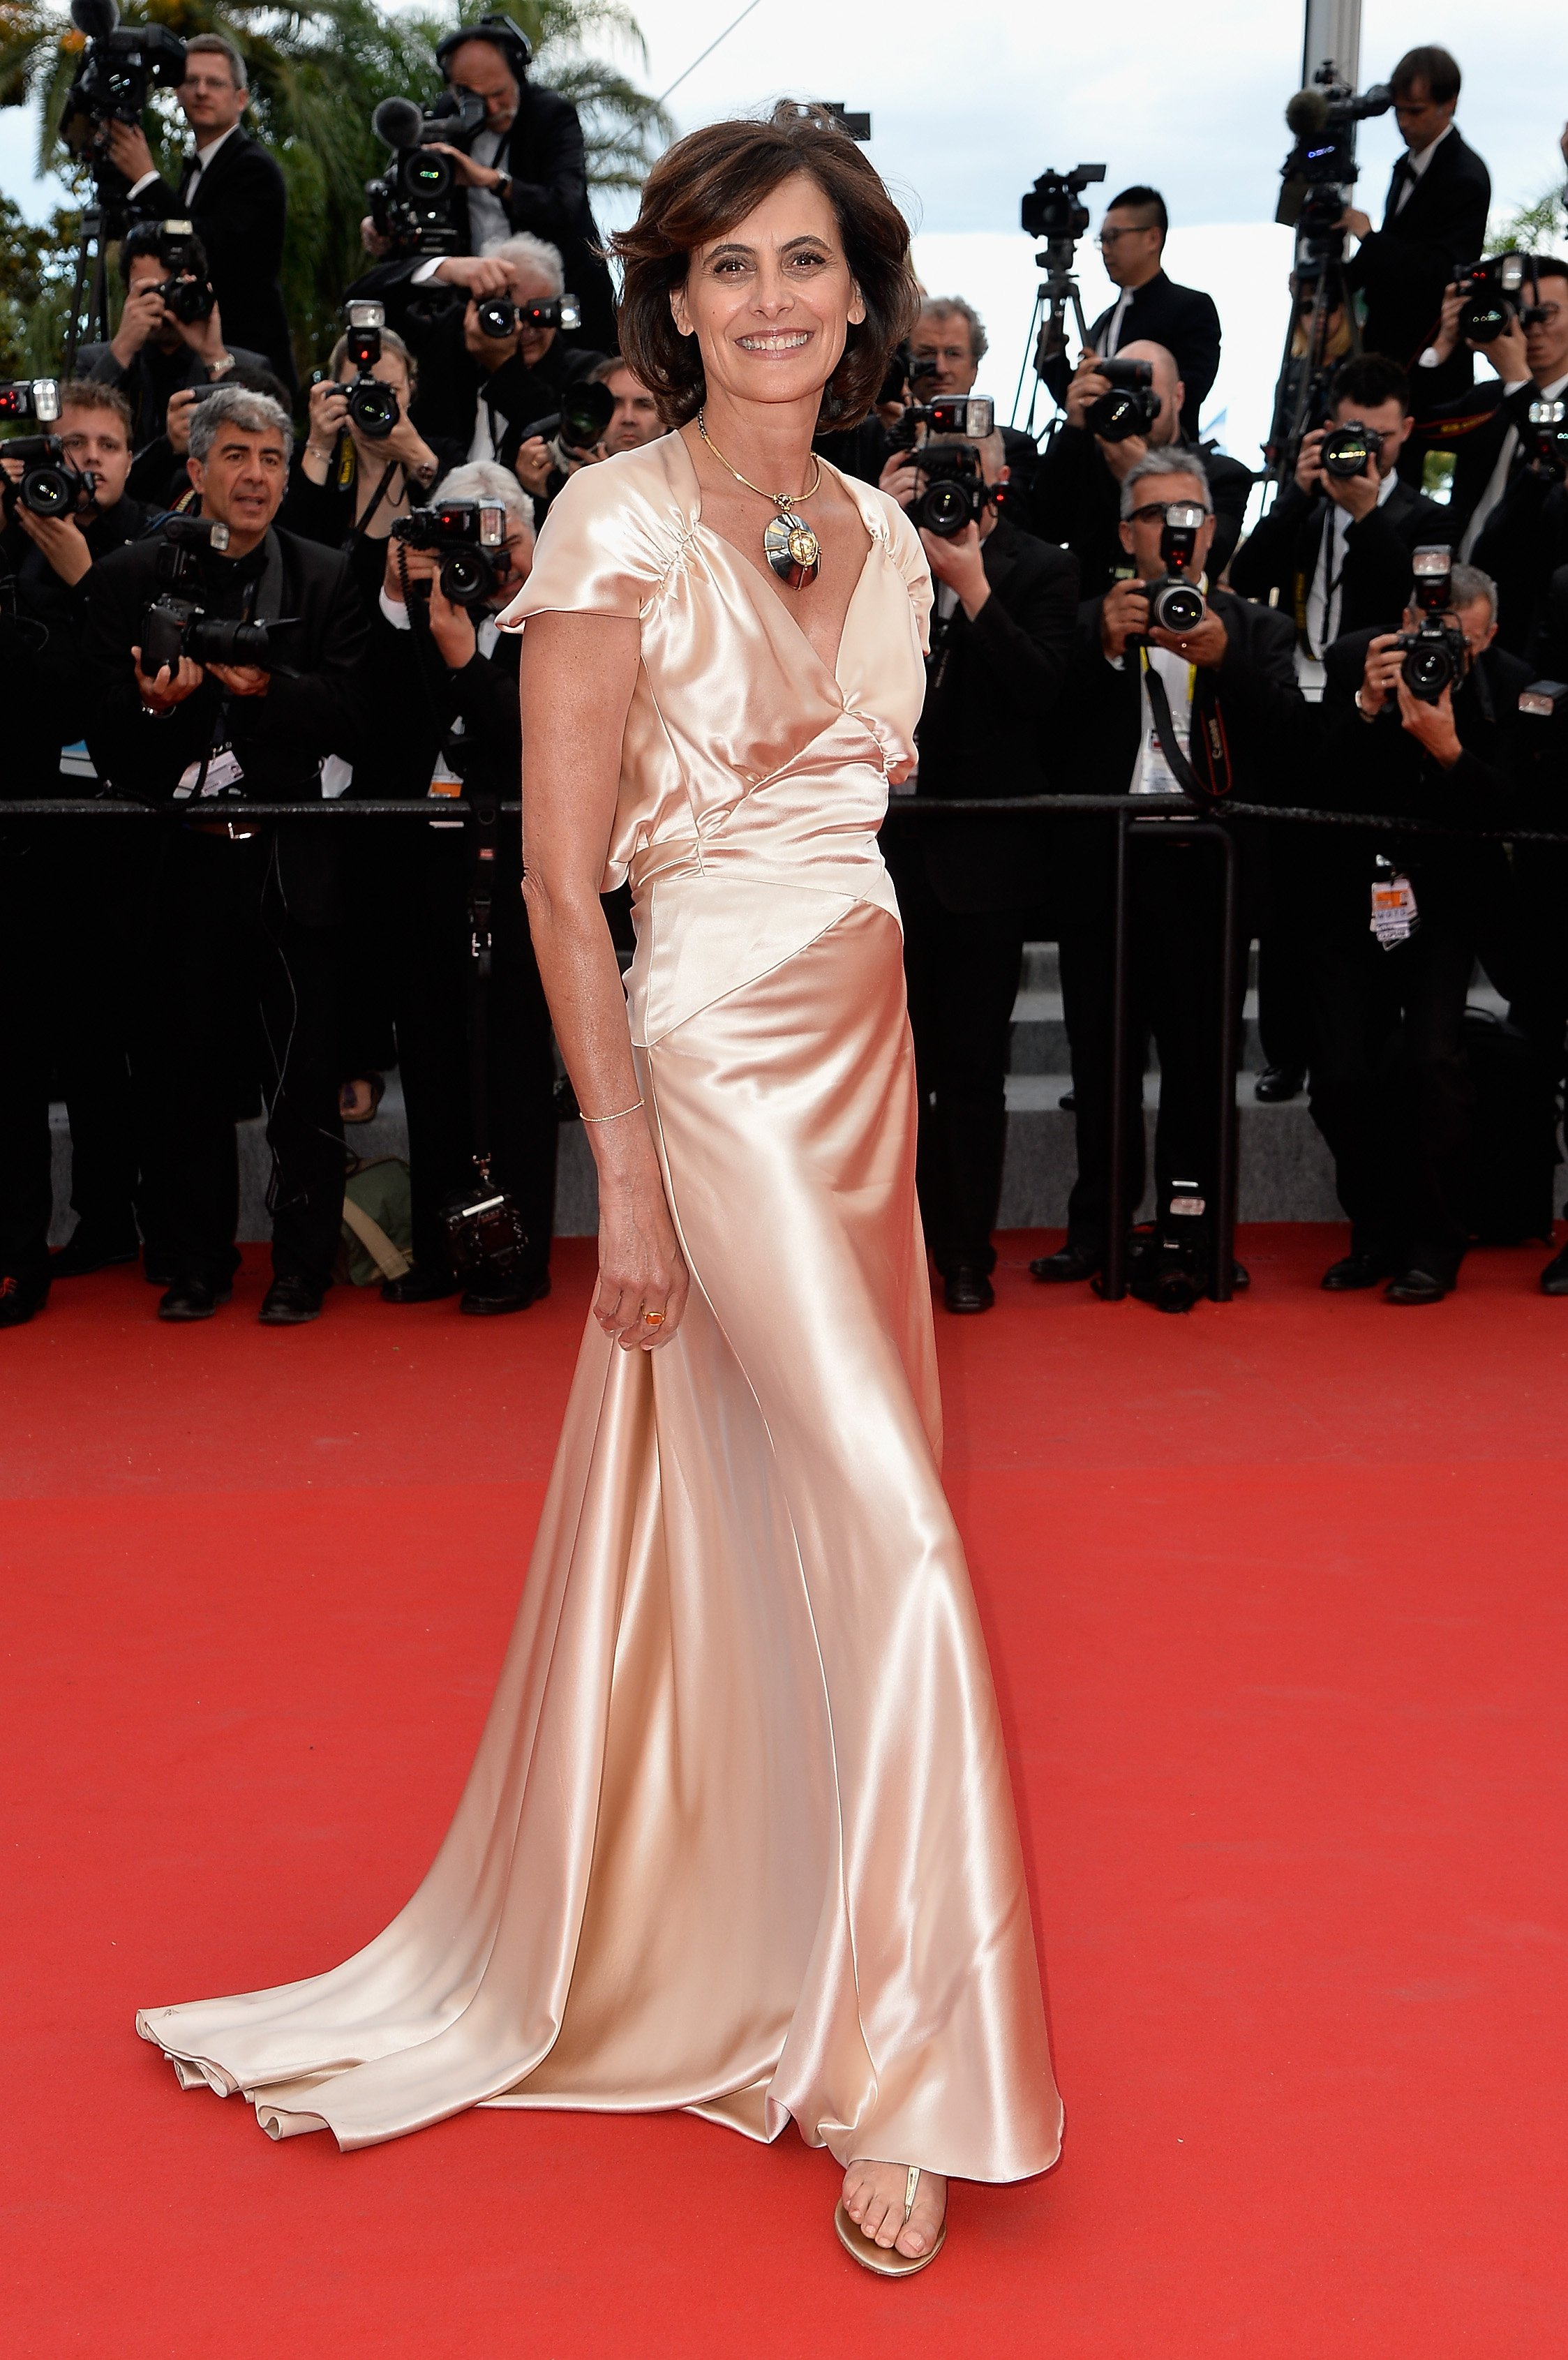 Ines de la Fressange attends the Premiere of  Irrational Man  during the 68th annual Cannes Film Festival on May 15, 2015 in Cannes, France.